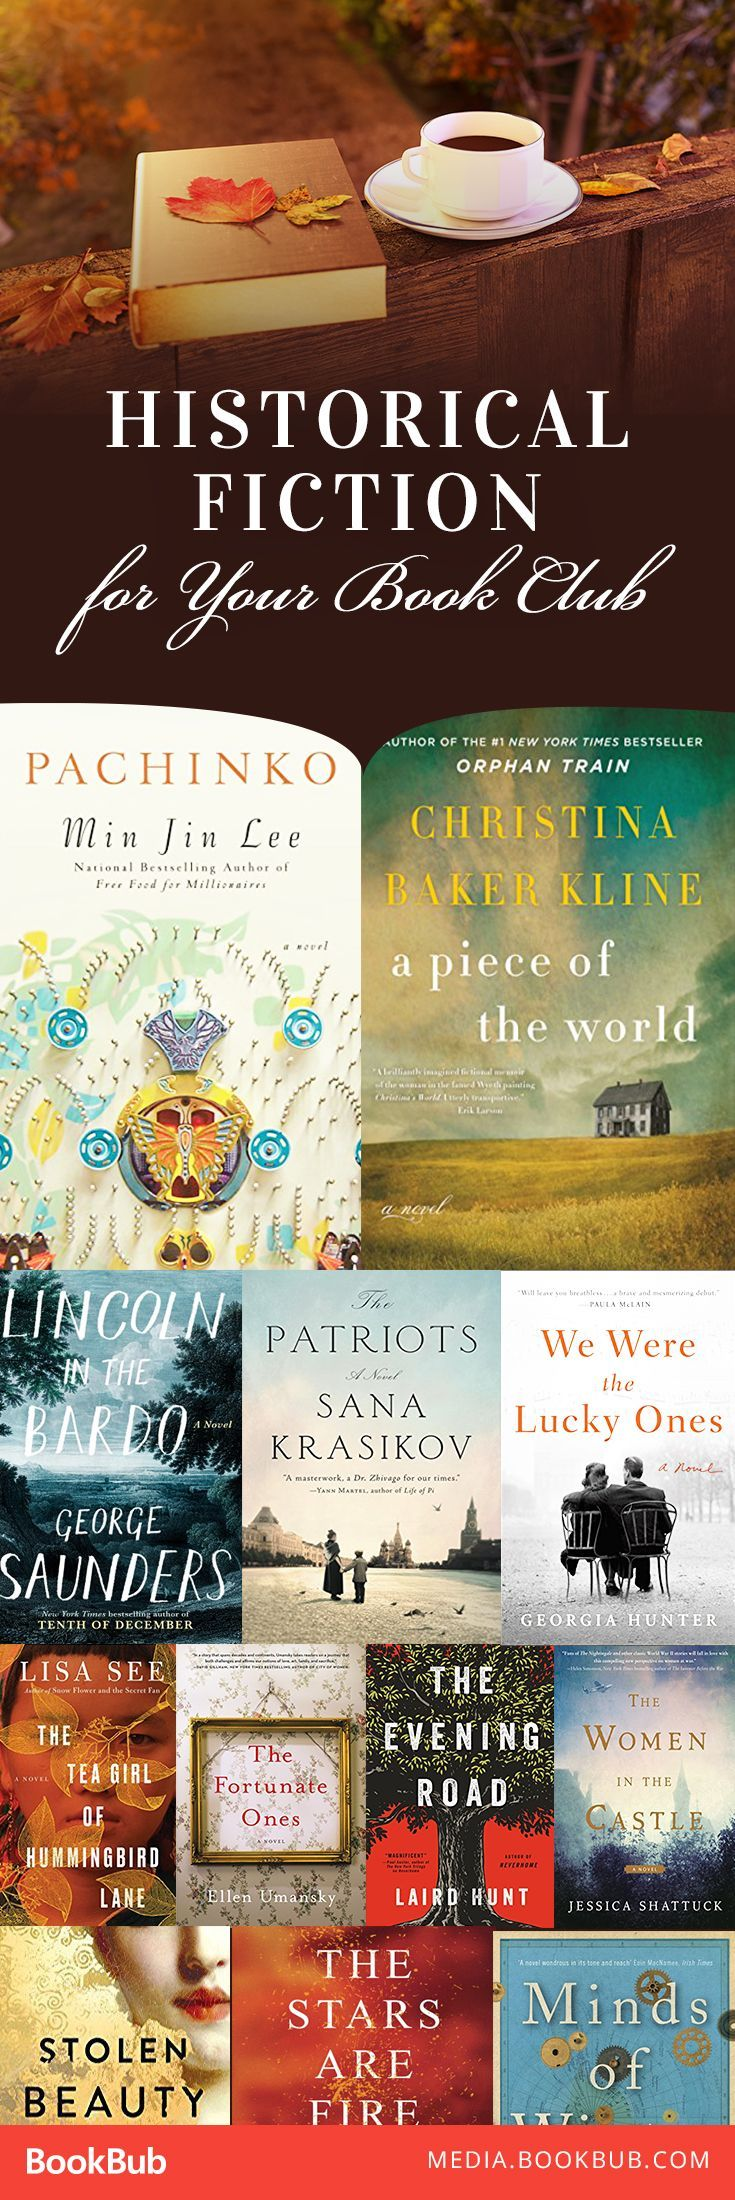 15 Historical Fiction Books For Book Clubs, Including Great Wwii Novels